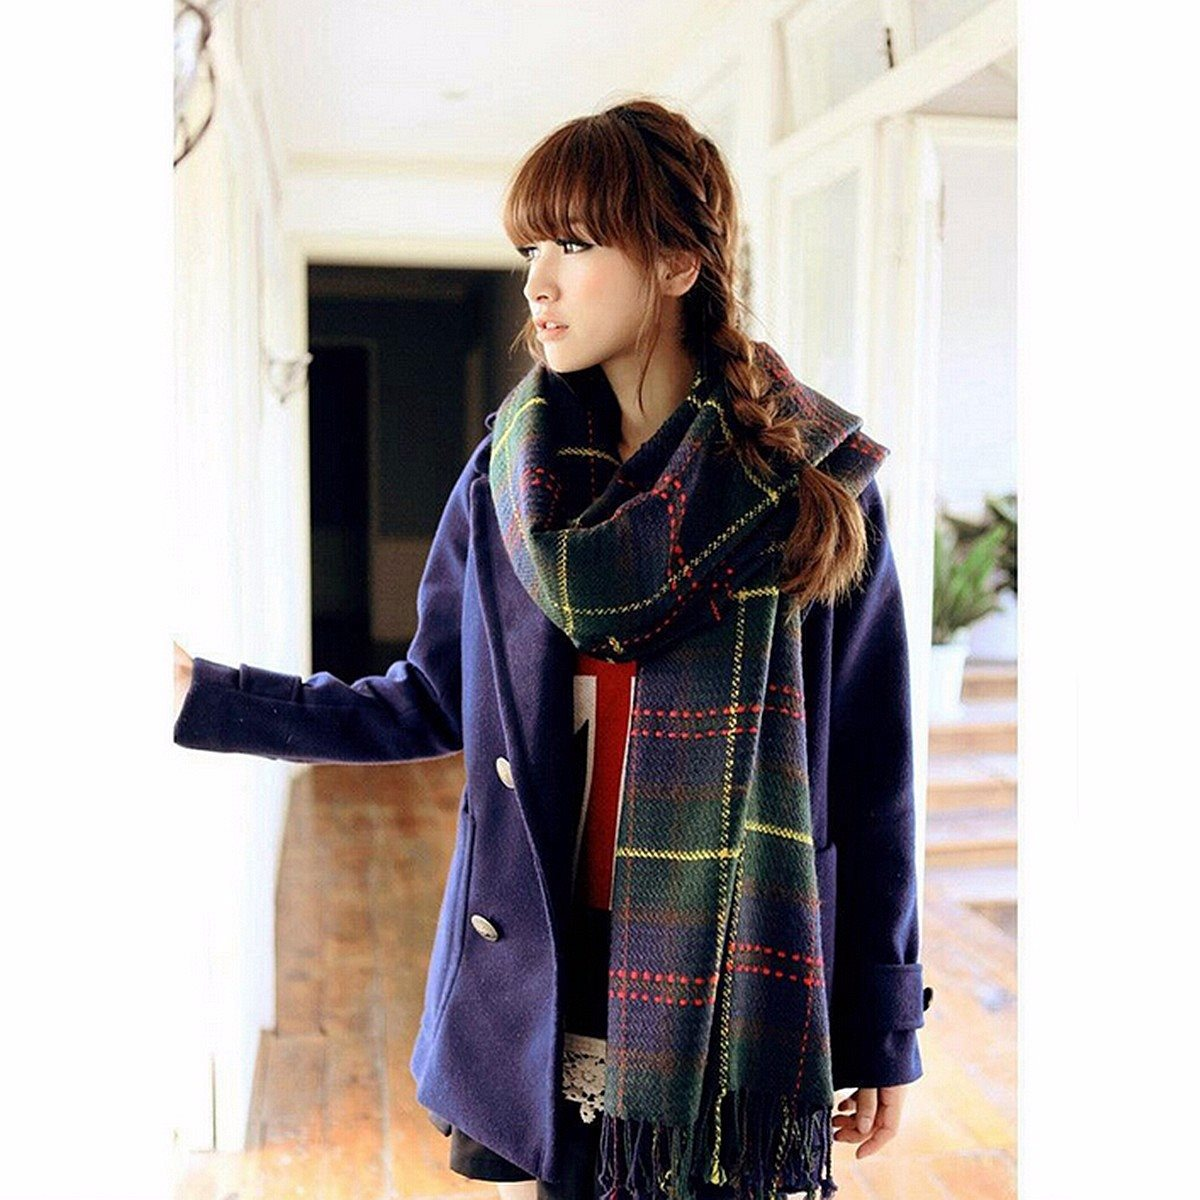 2016 Fashion Woman Winter Warm font b Tartan b font Check Neck Shawl Wrap Stole Plaid